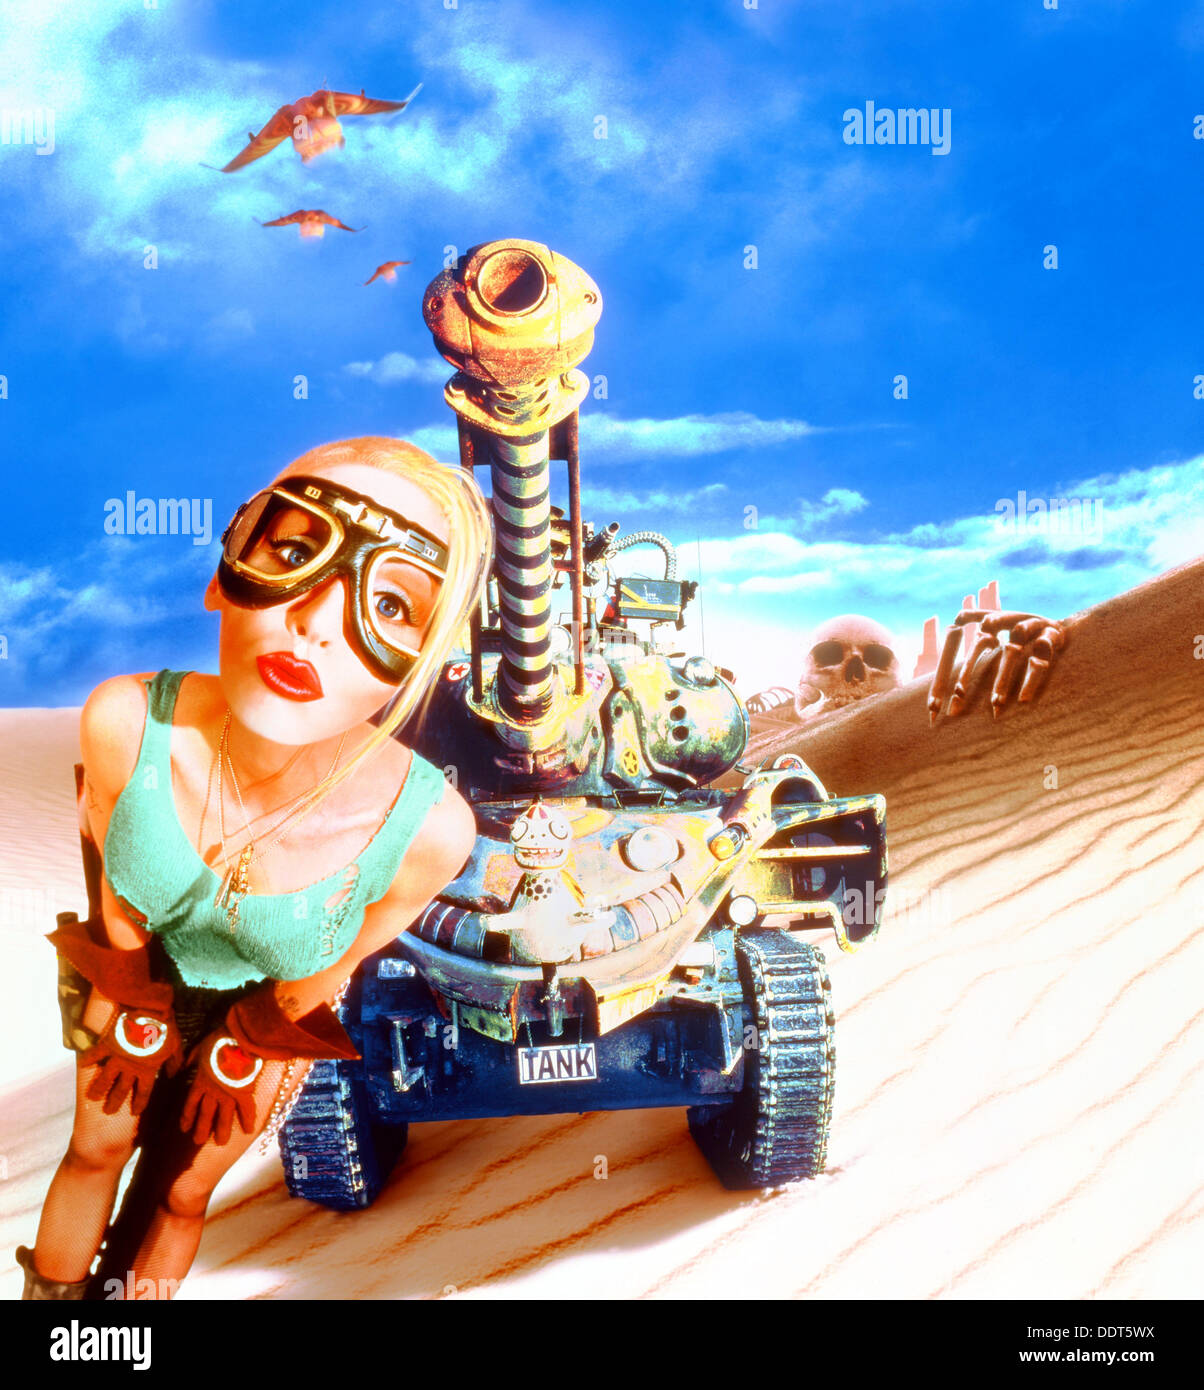 Search for tank girl at moviegallery